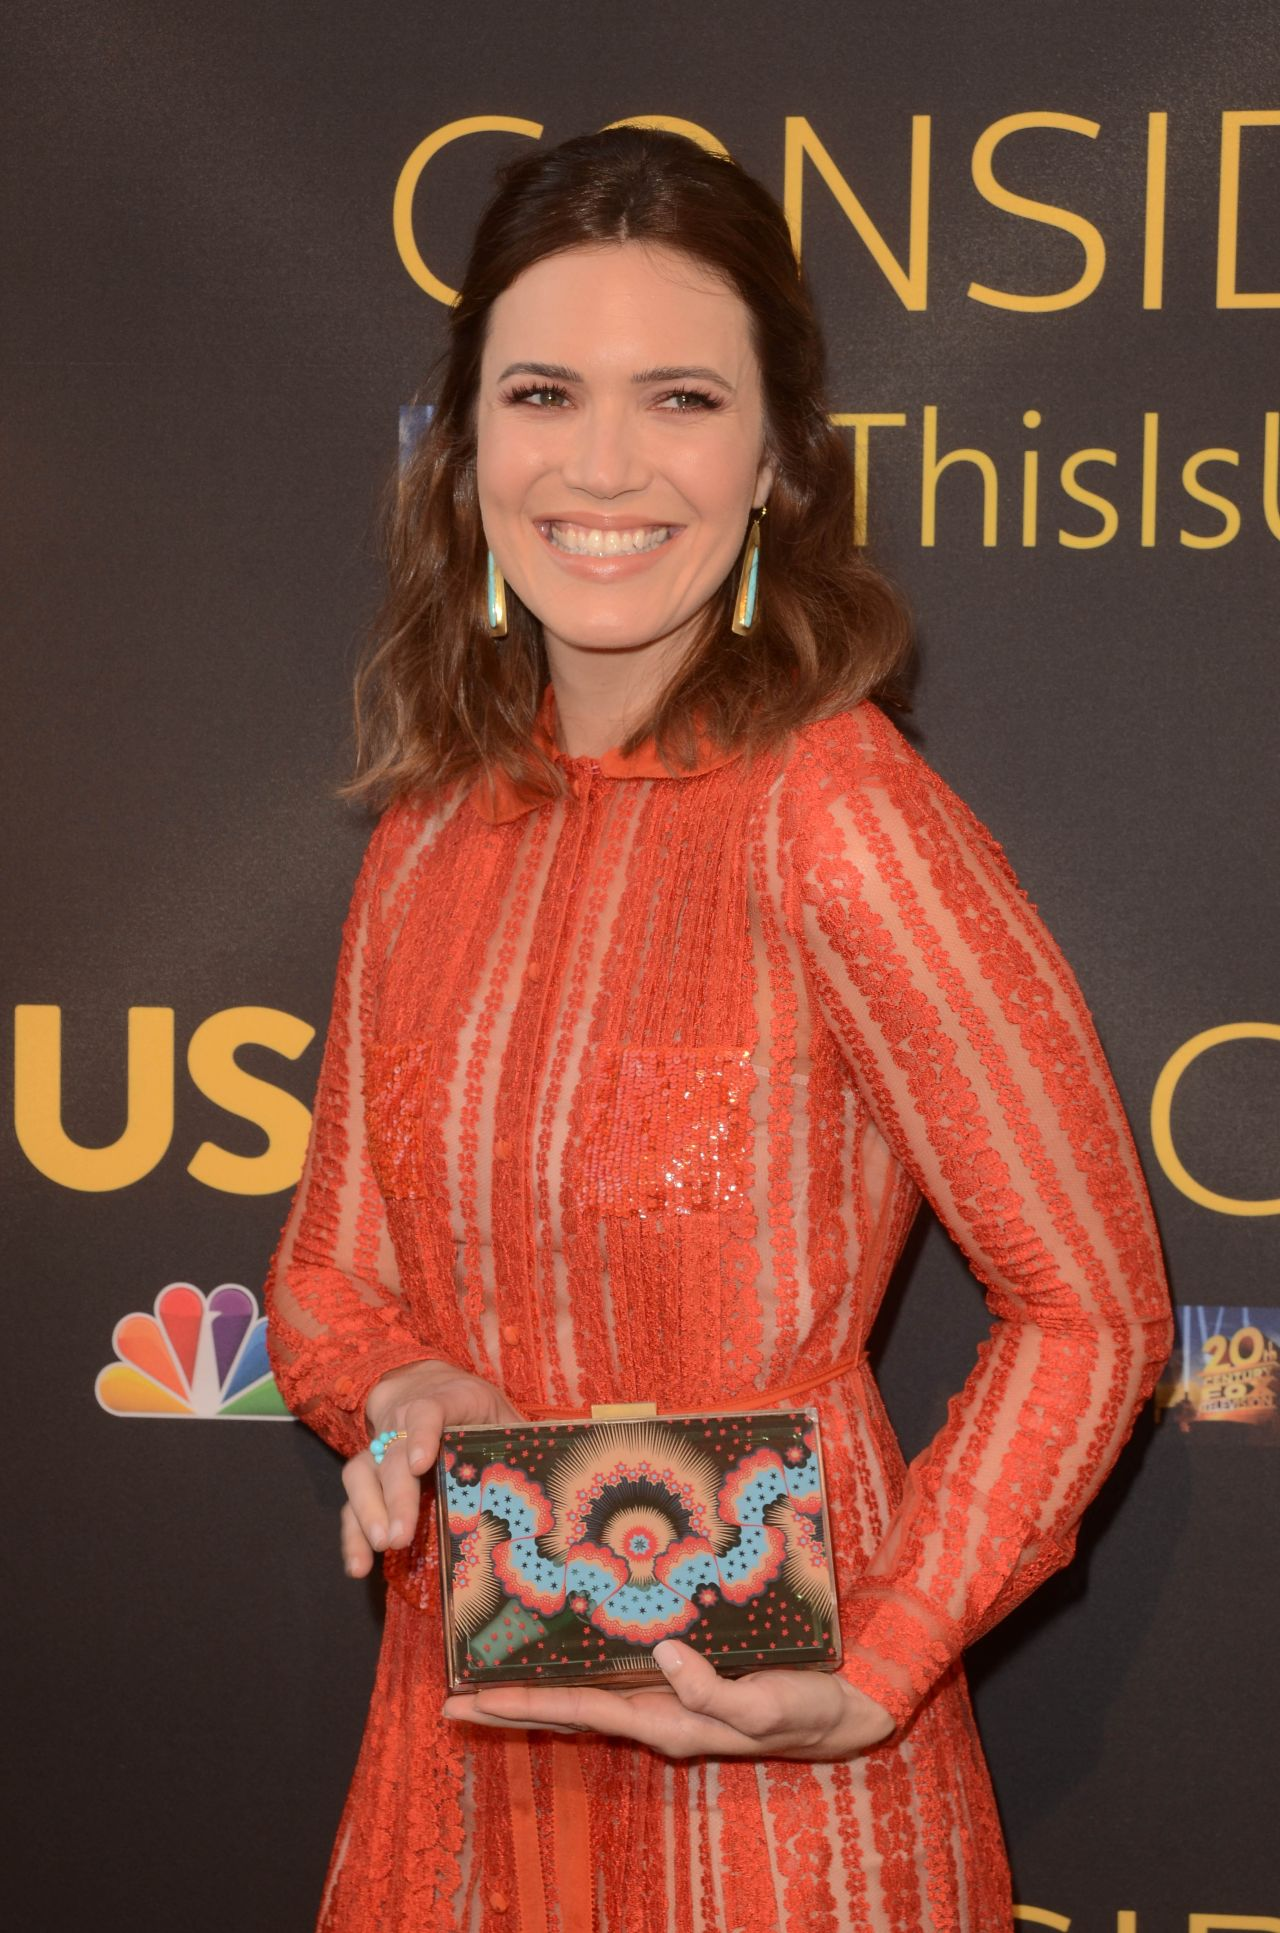 Mandy Moore Quot This Is Us Quot Tv Show Event In La 08 14 2017